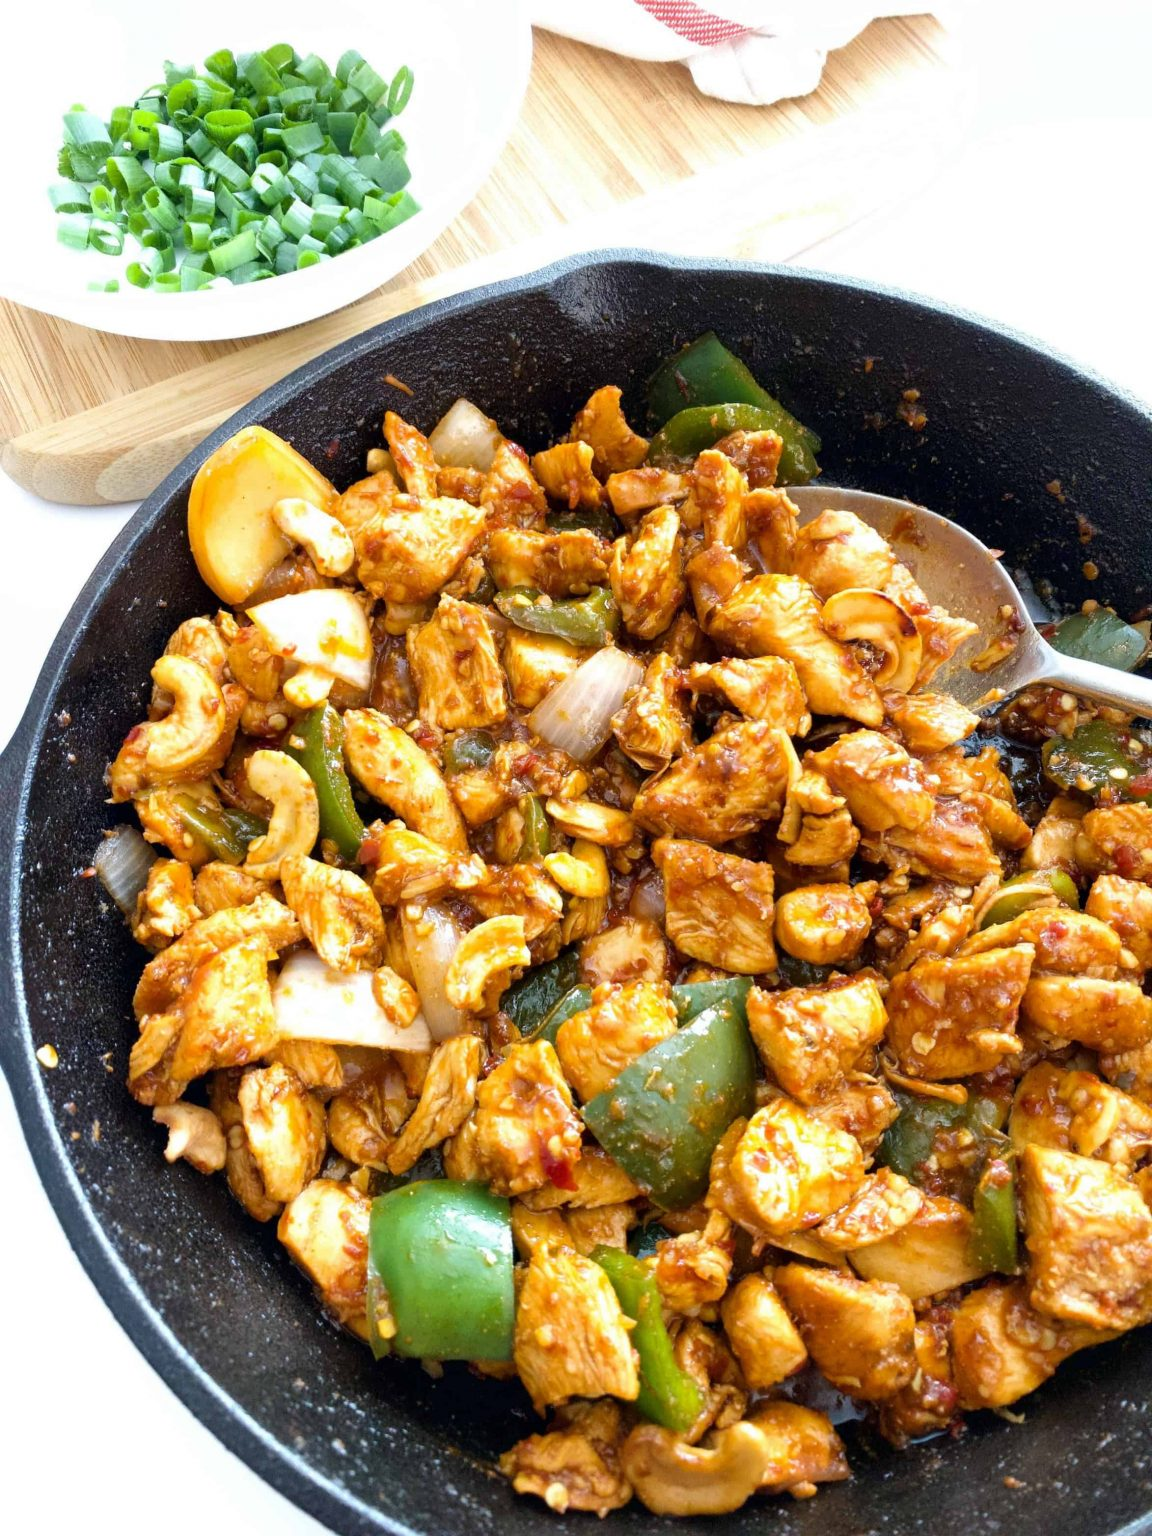 Low-carb Keto Cashew Chicken